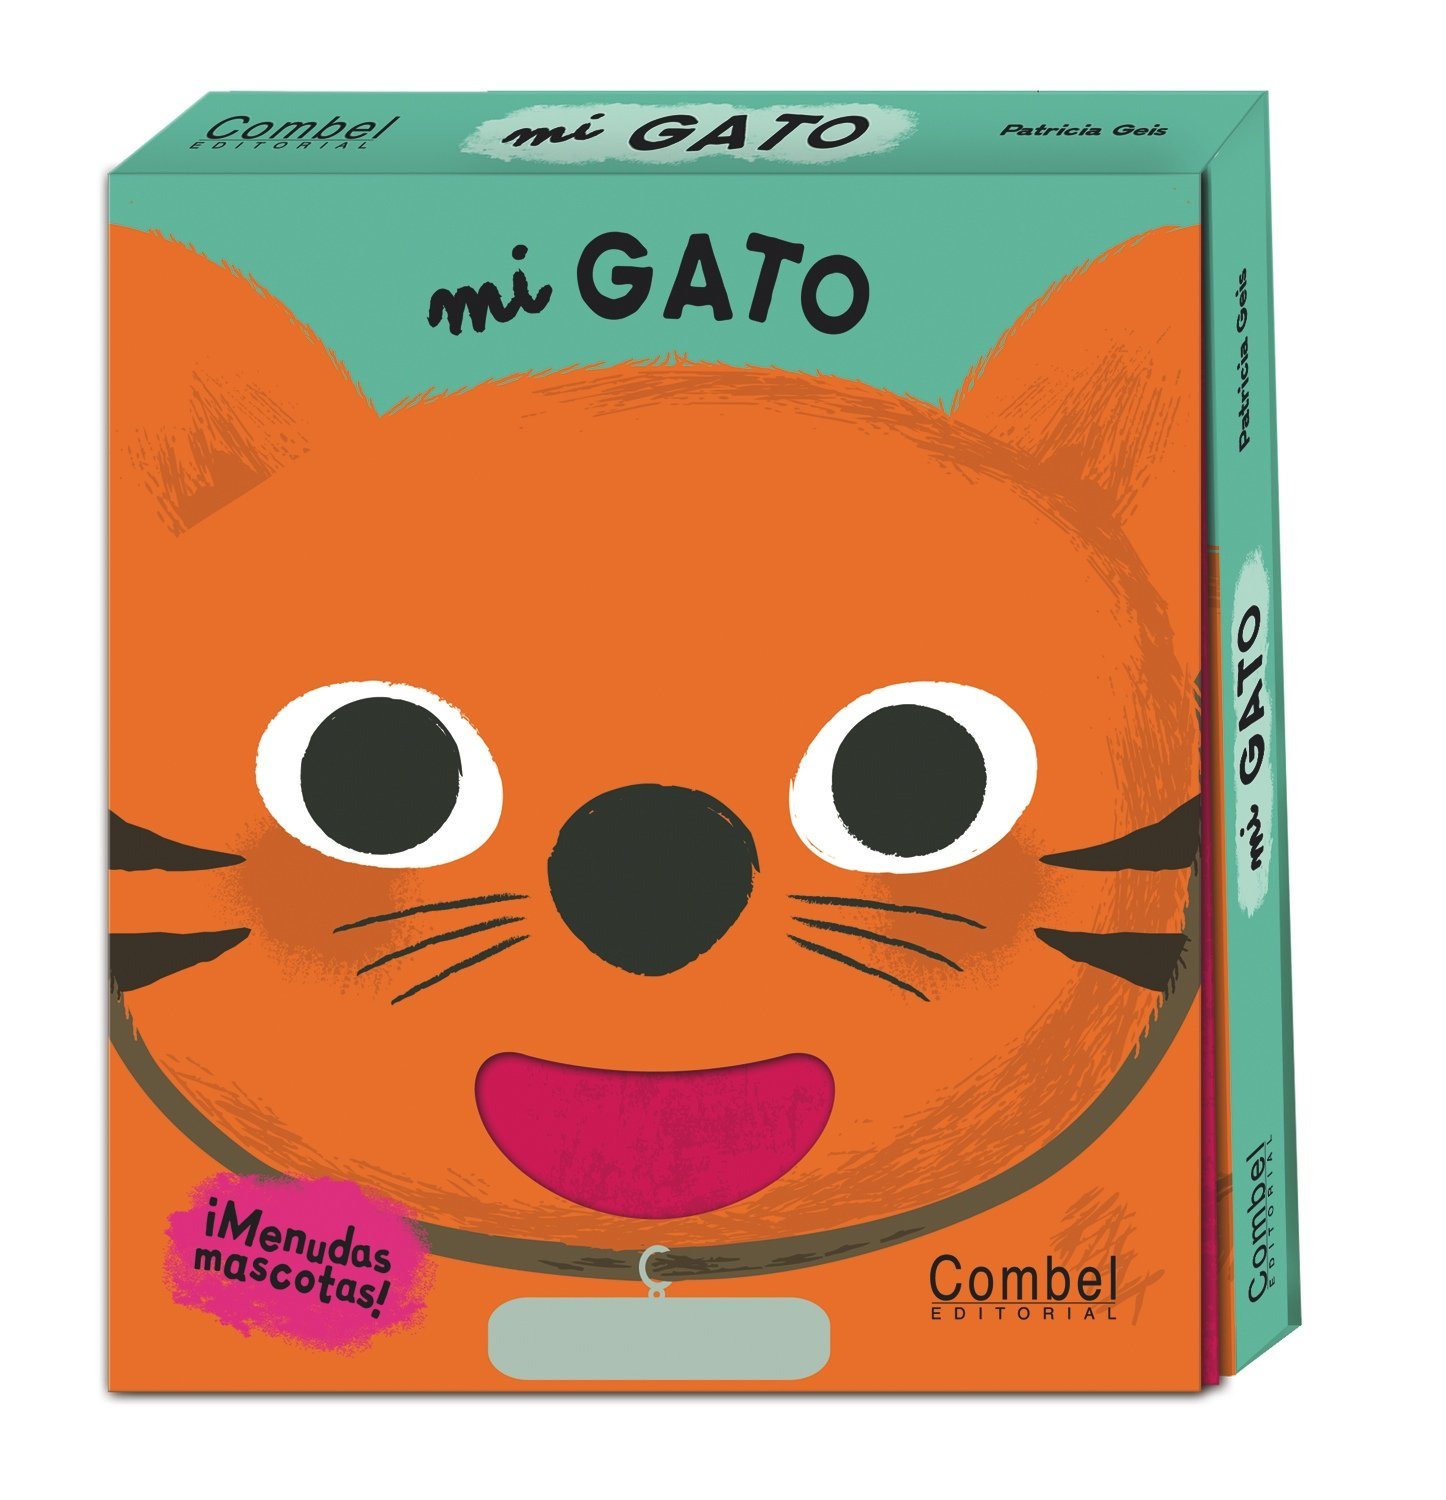 Mi gato (¡Menudas mascotas!) (Spanish Edition) (Spanish) Board book – September 1, 2013